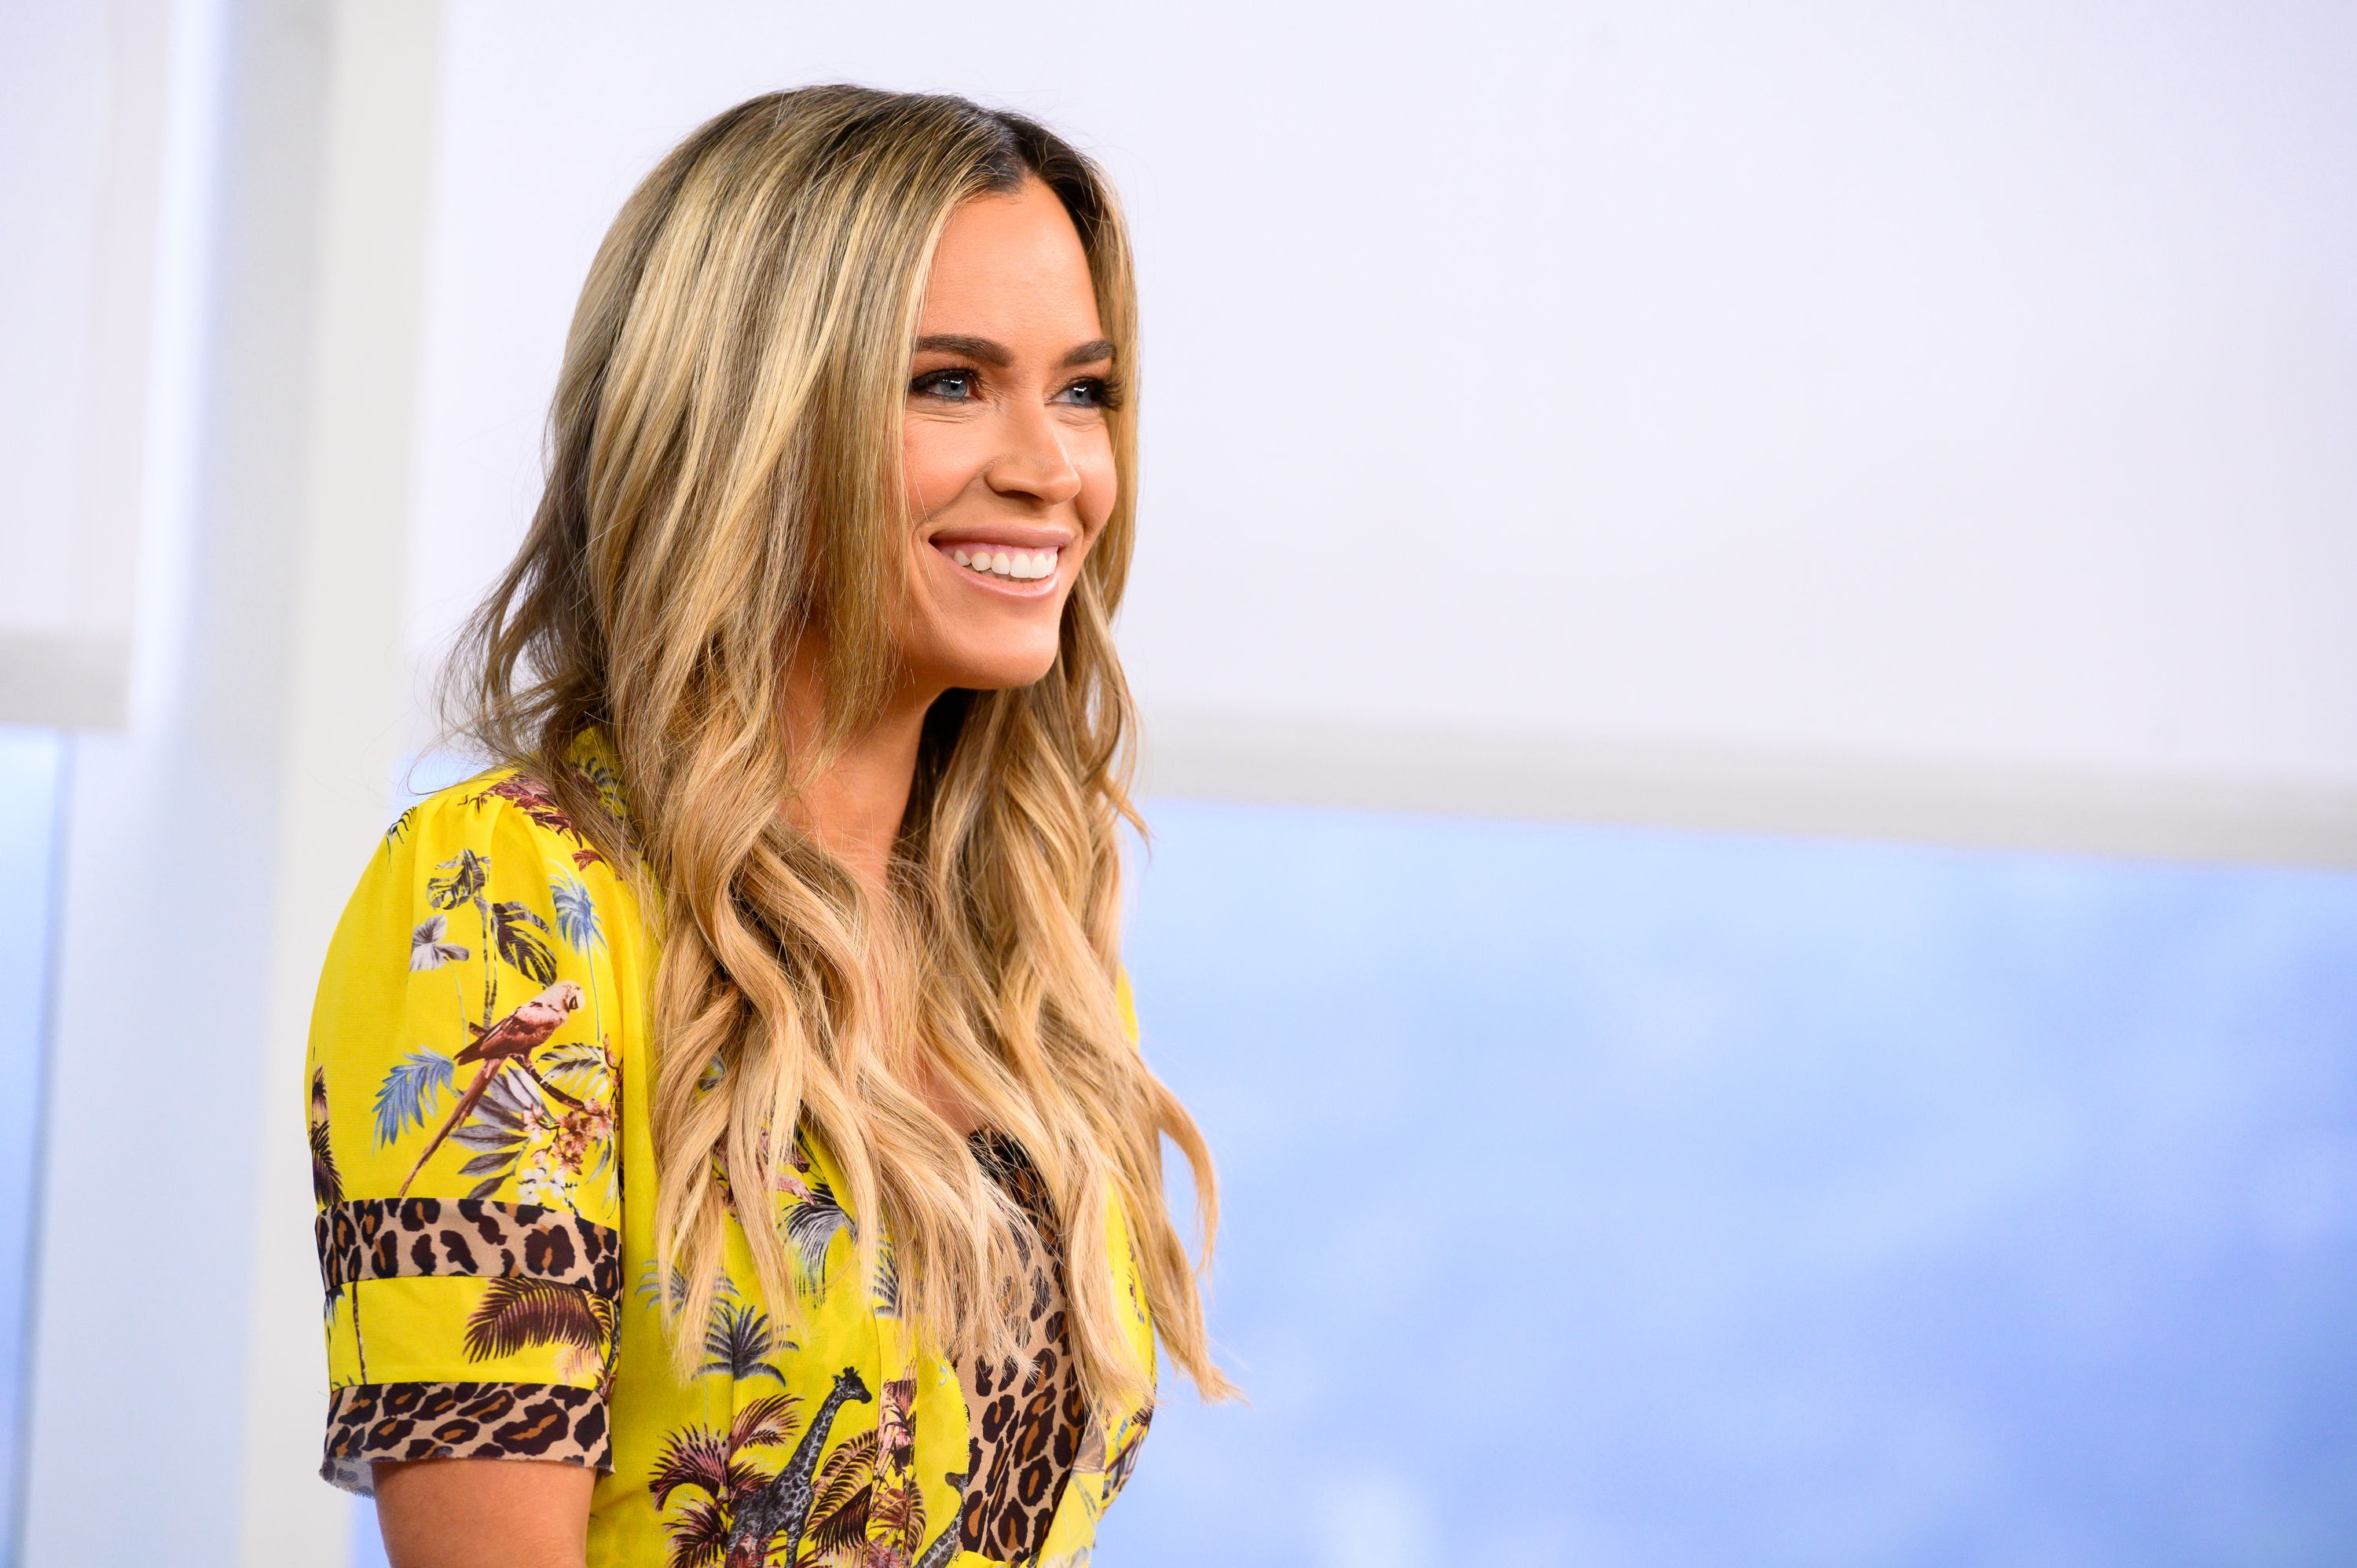 'RHOBH' Star Teddi Mellencamp Just Shared A No-Makeup Selfie To Highlight Realities Of Motherhood